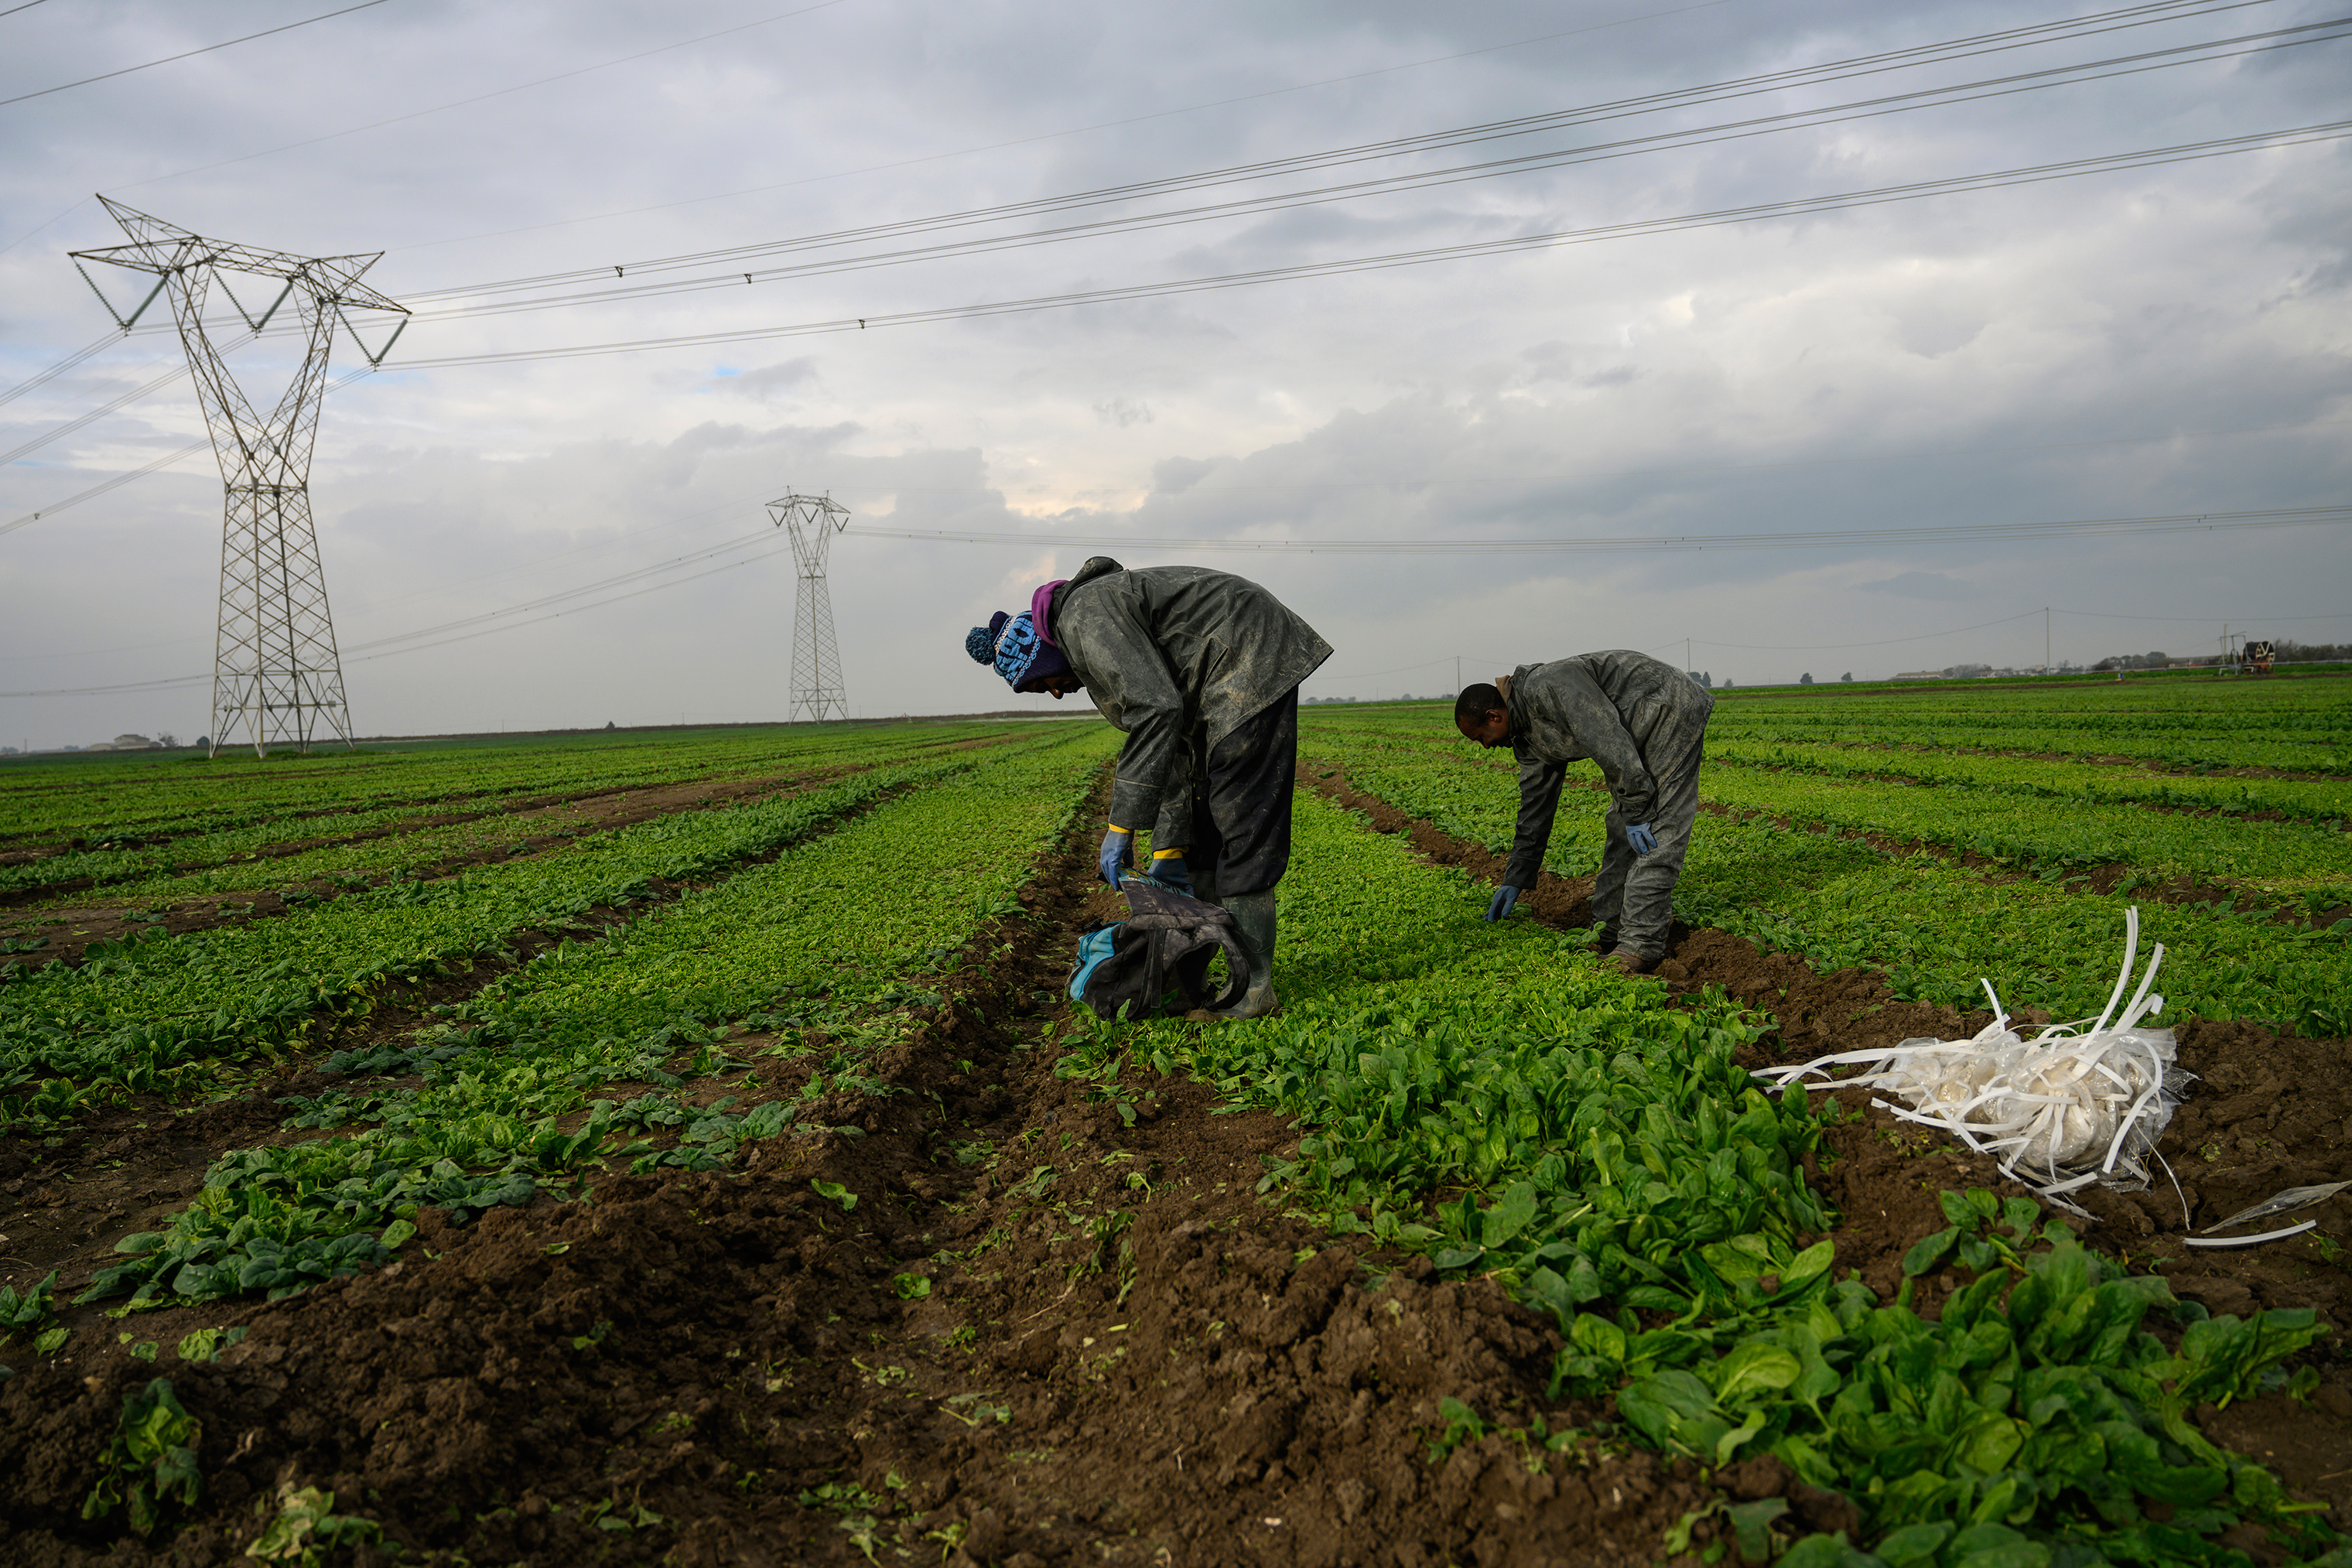 African day laborers who are part of the caporalato system of cheap labor work the fields around Foggia, Italy